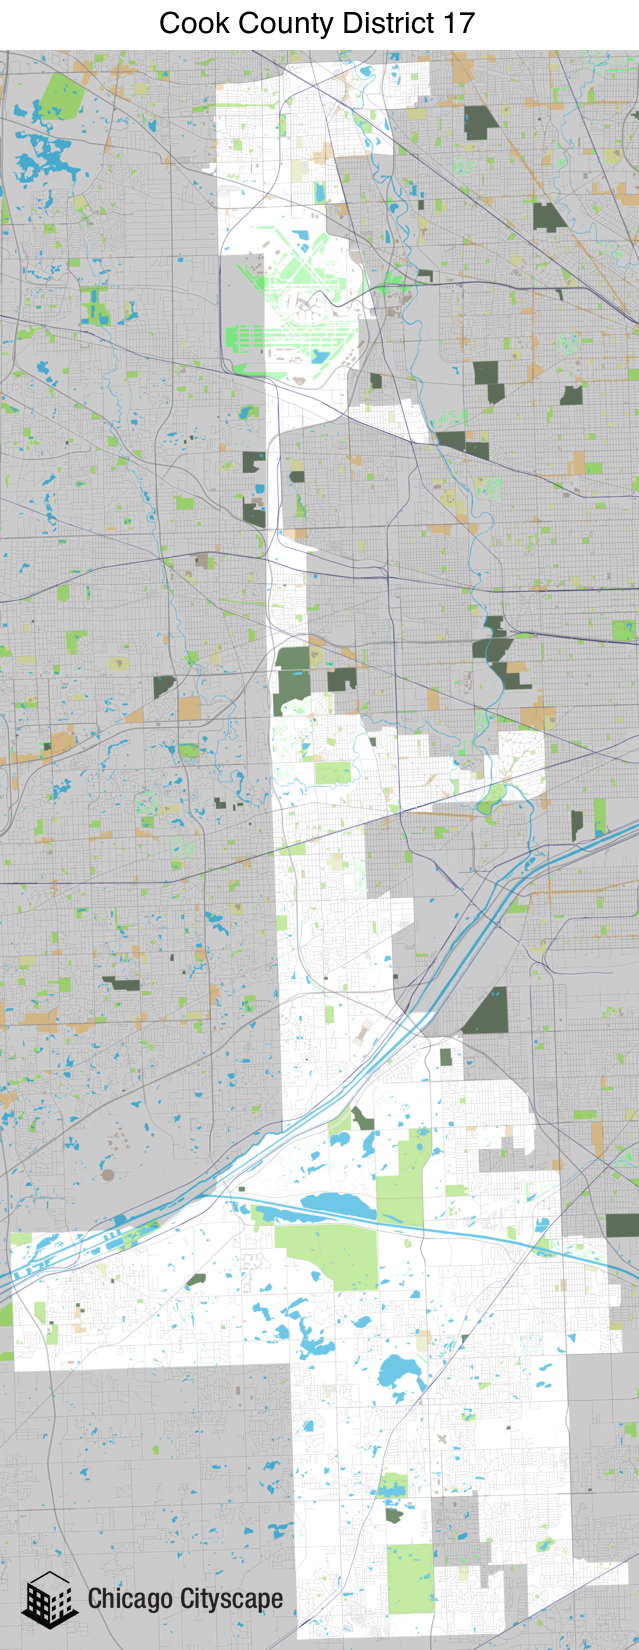 Chicago Cityscape - Map of building projects, properties